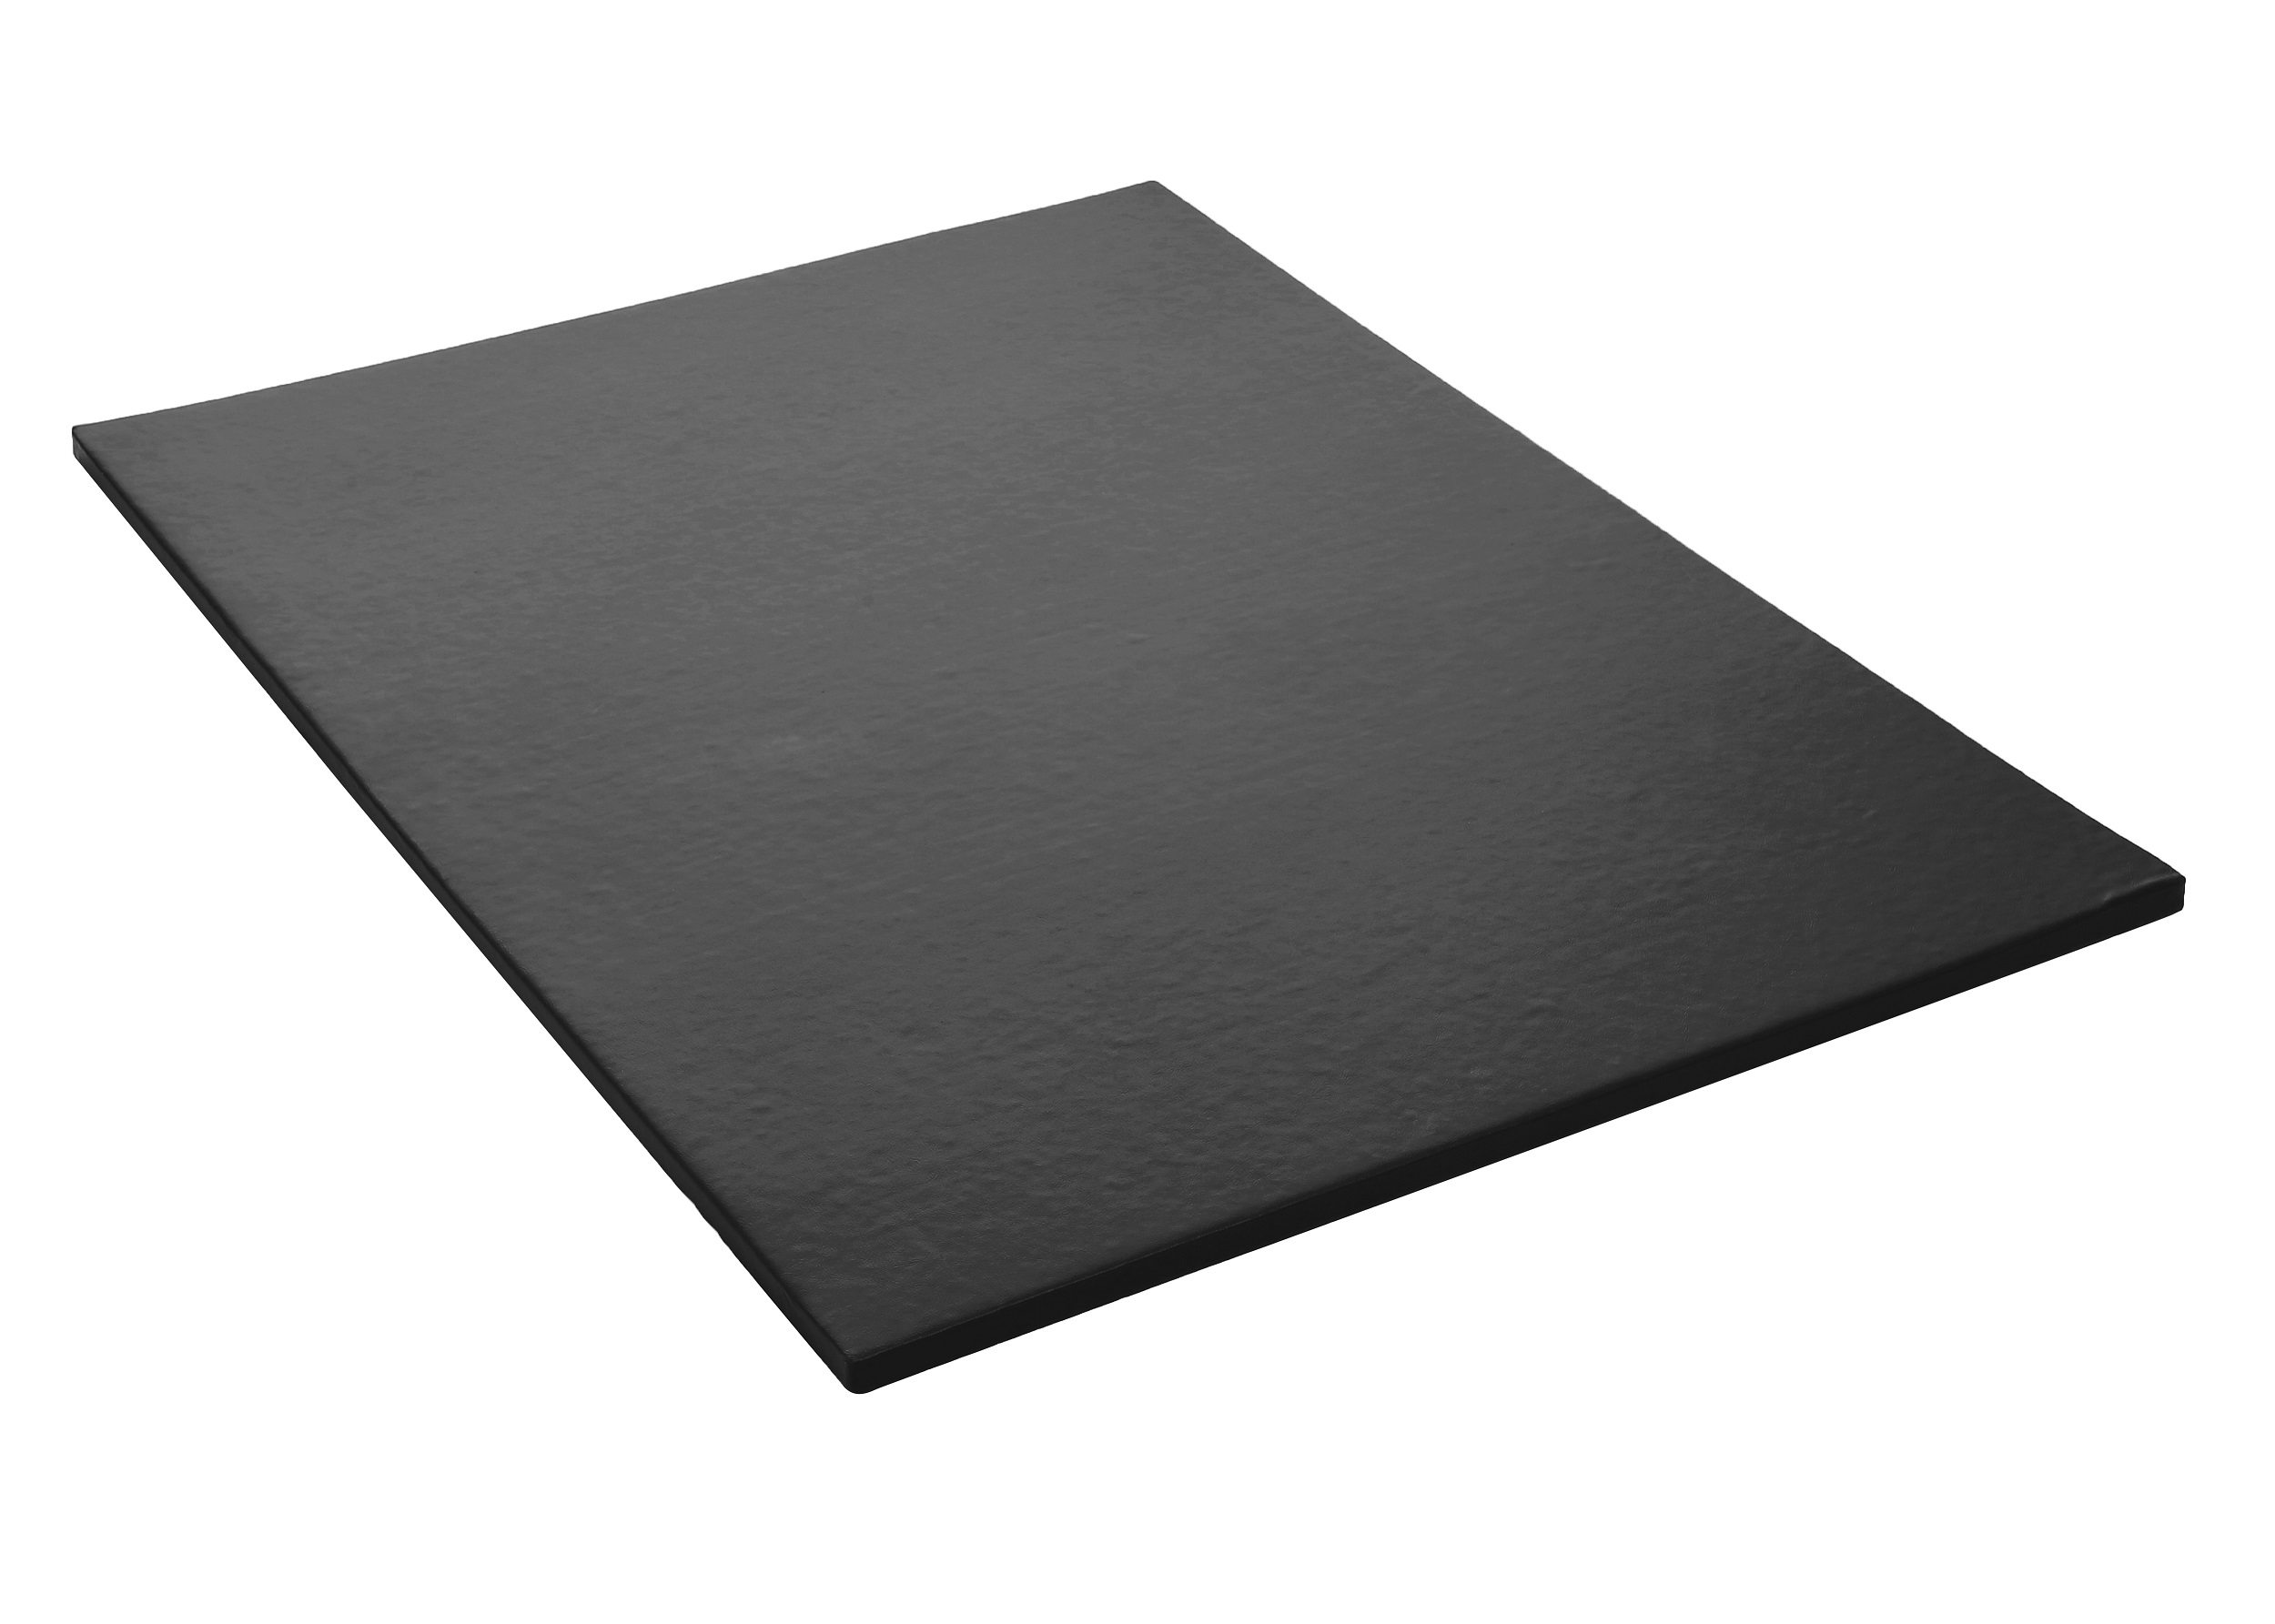 Black Promat Multipurpose Gym Mat